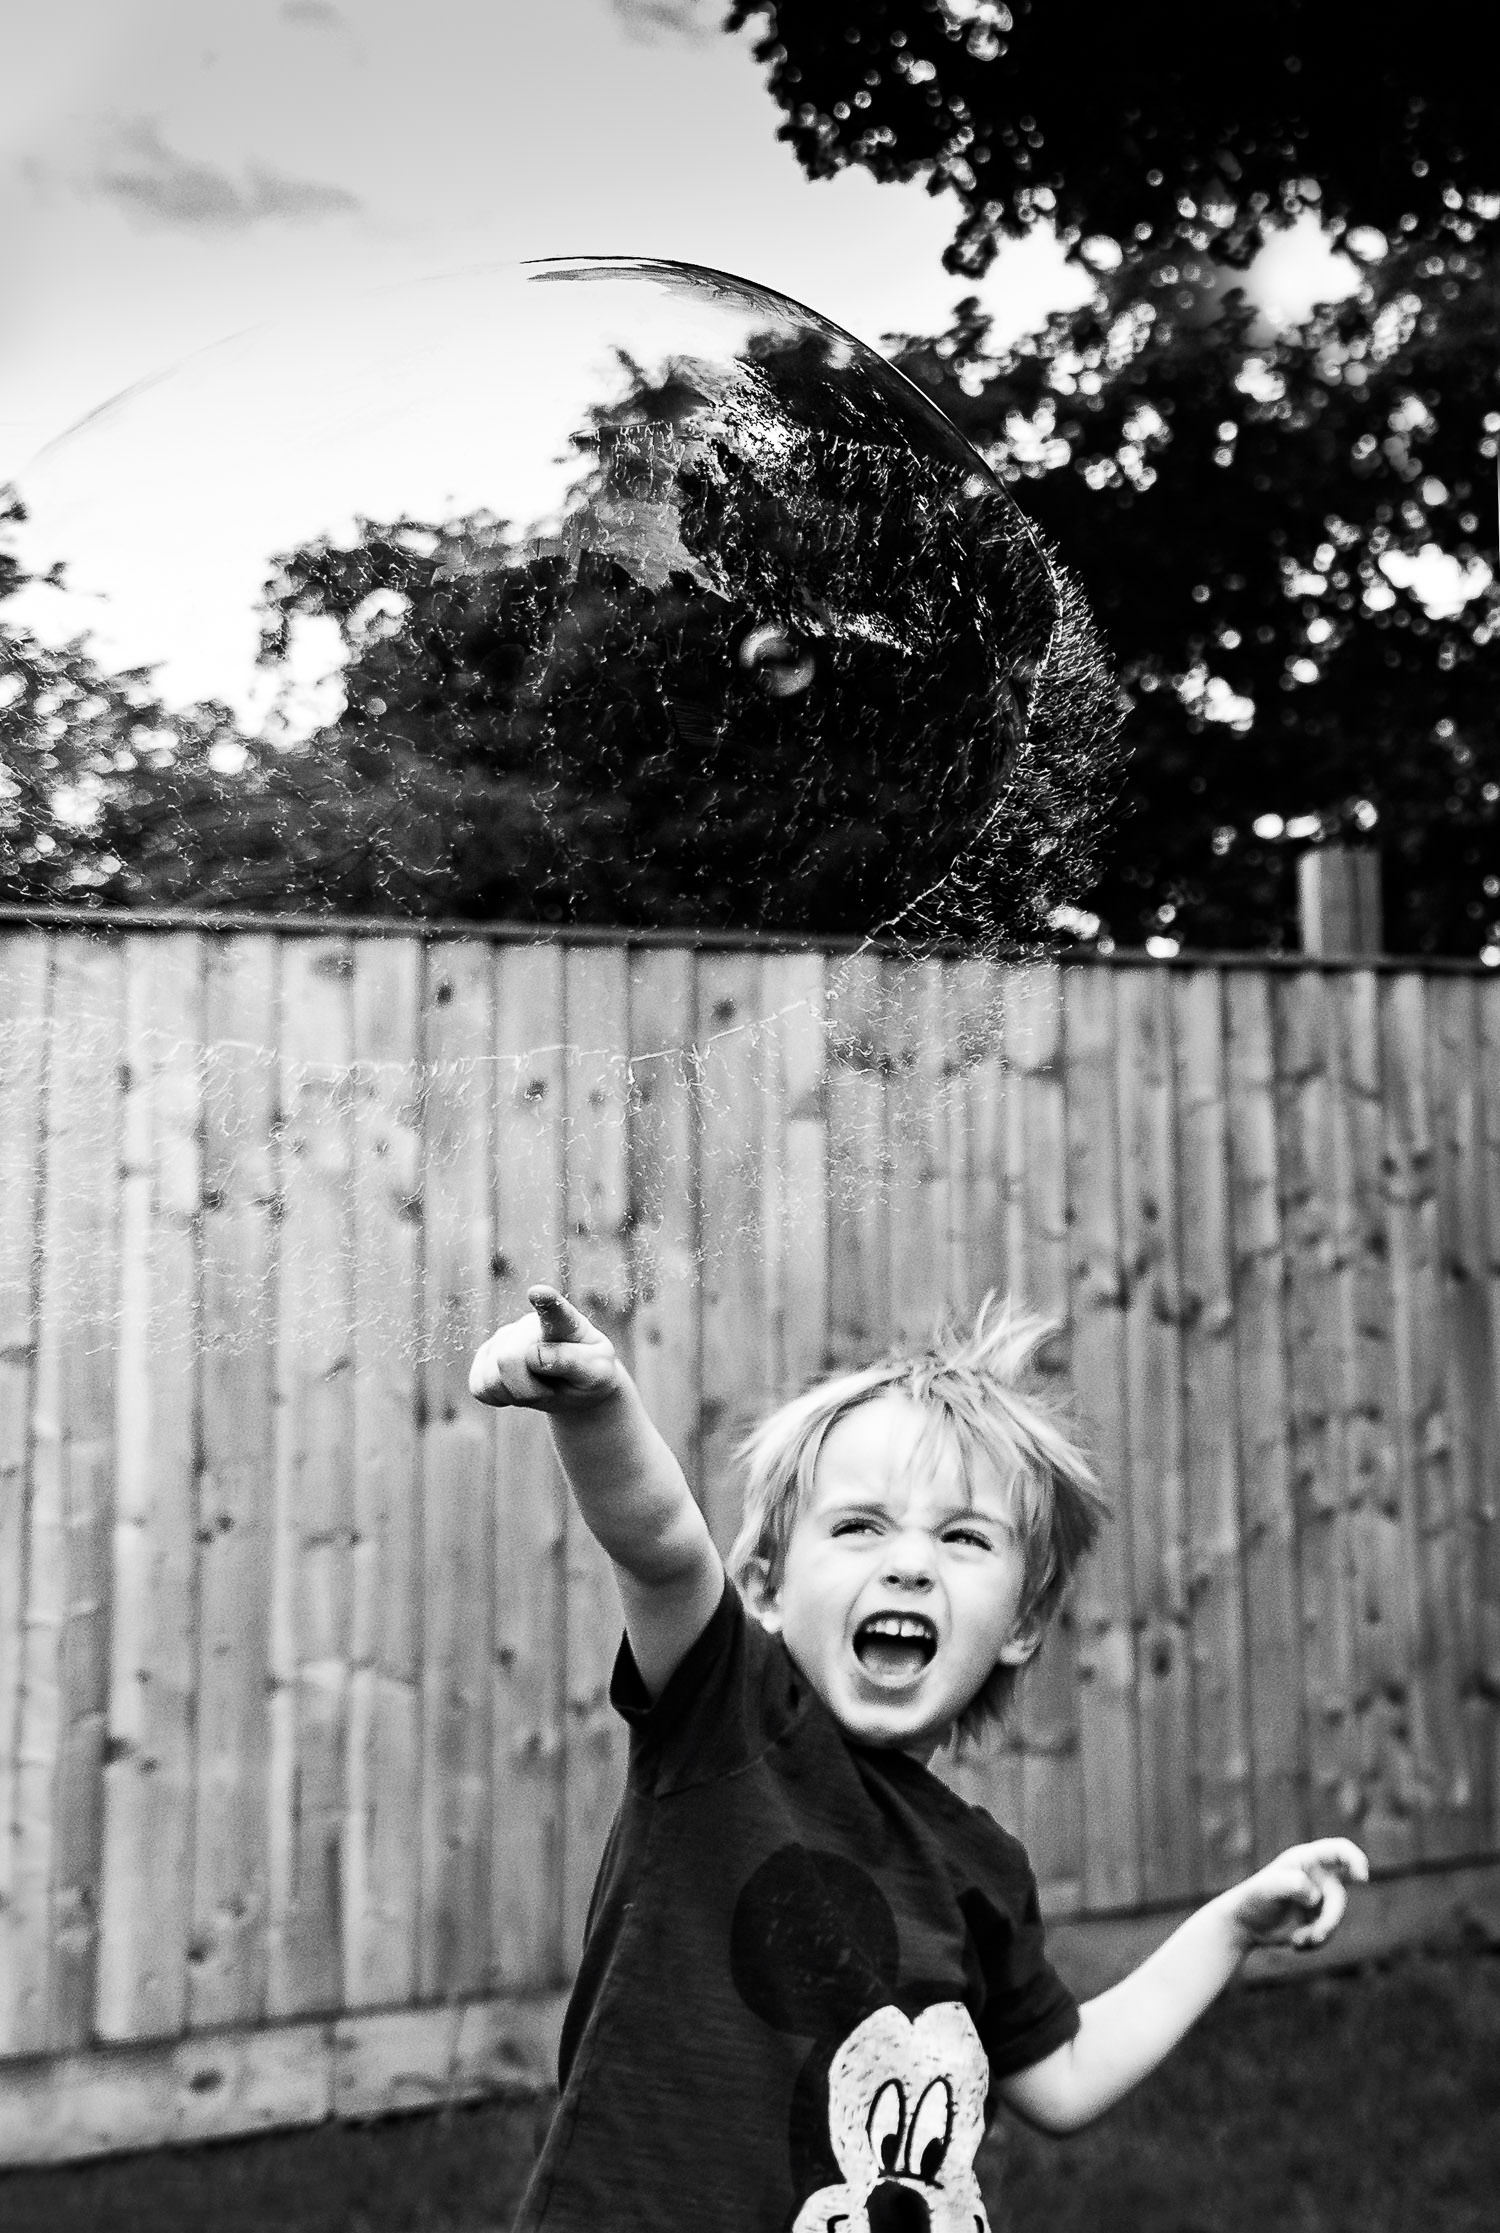 Boy bursting large bubble above his head